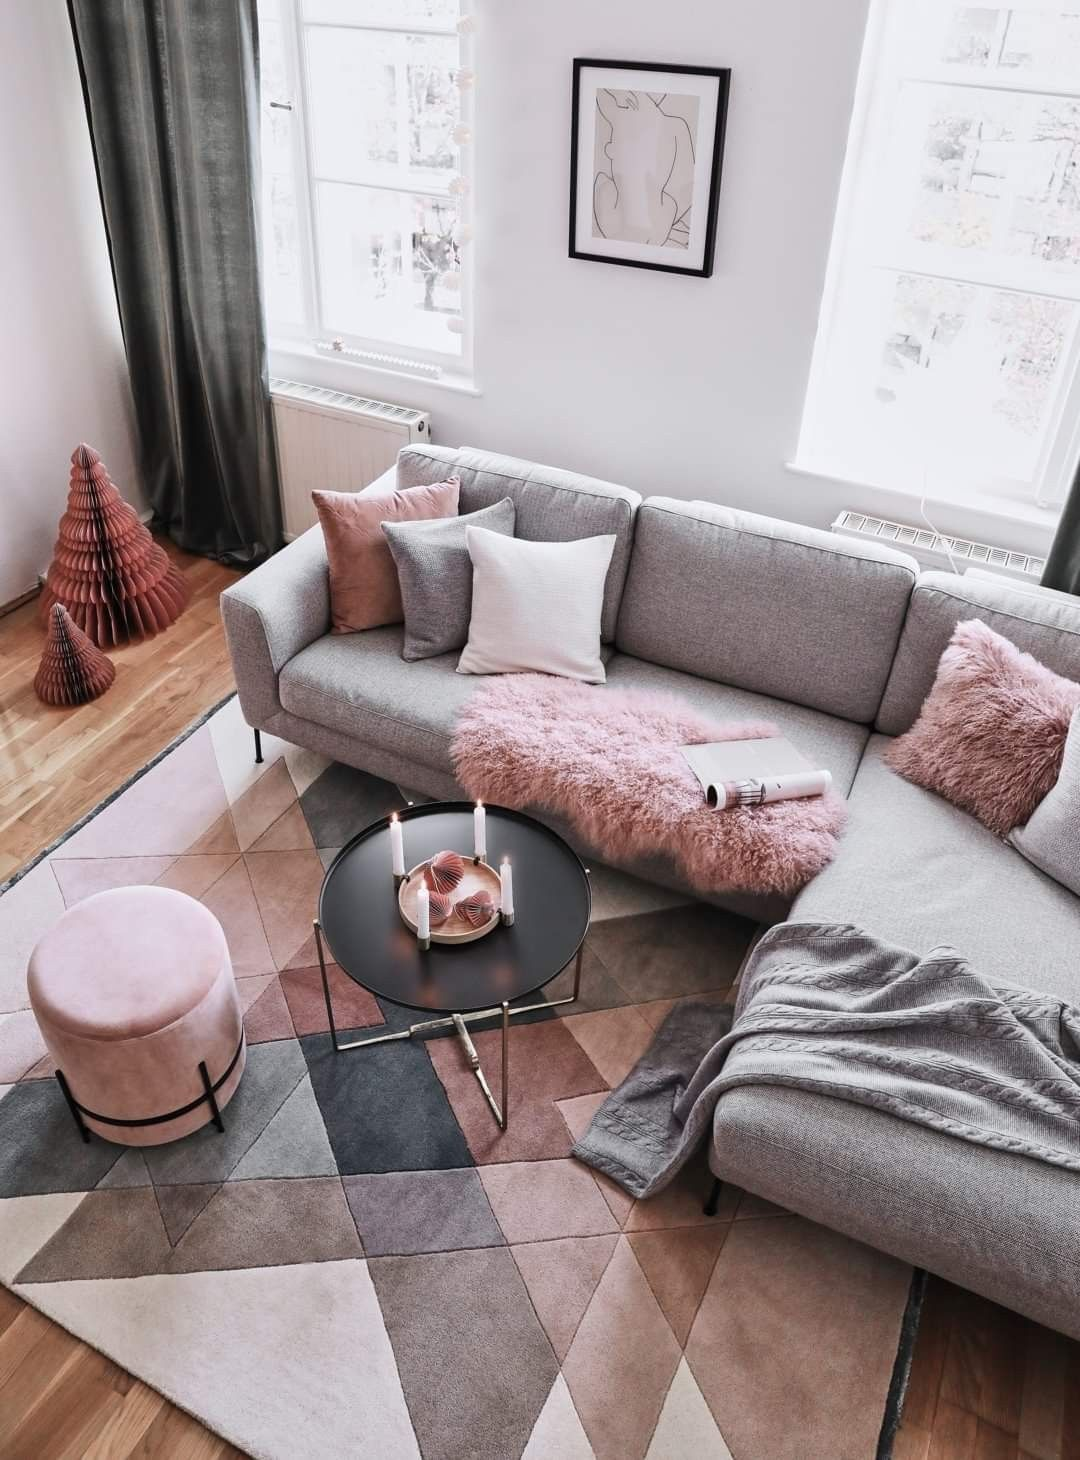 Pinterest Chandlerjocleve Instagram Chandlercleveland Pink Living Room Living Room Decor Apartment Couches Living Room